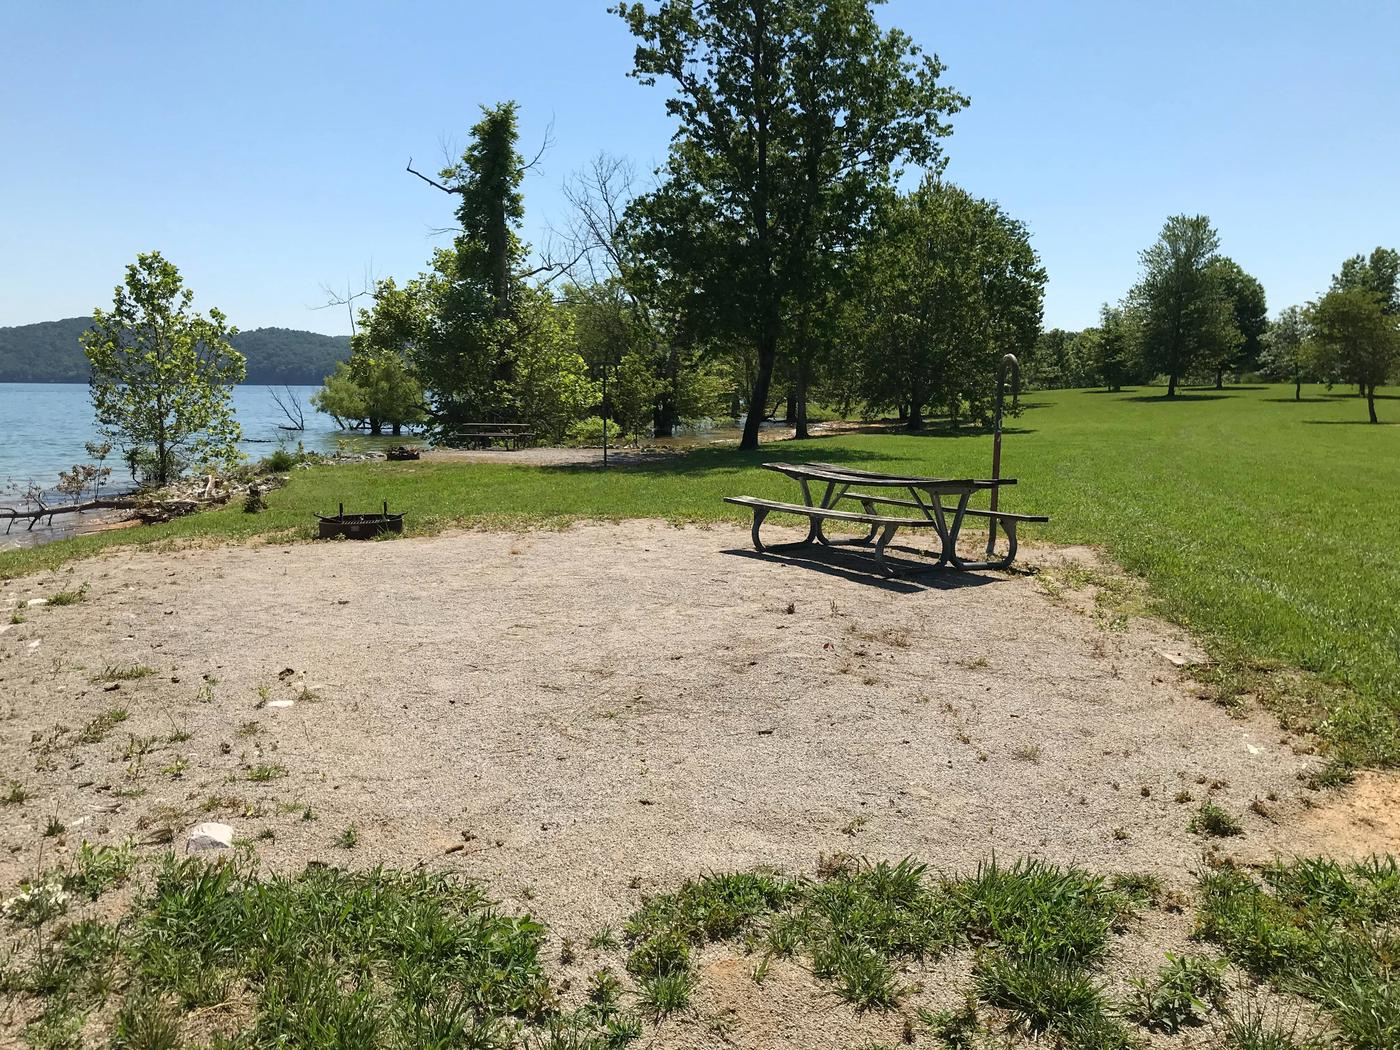 LILLYDALE CAMPGROUND SITE # 107